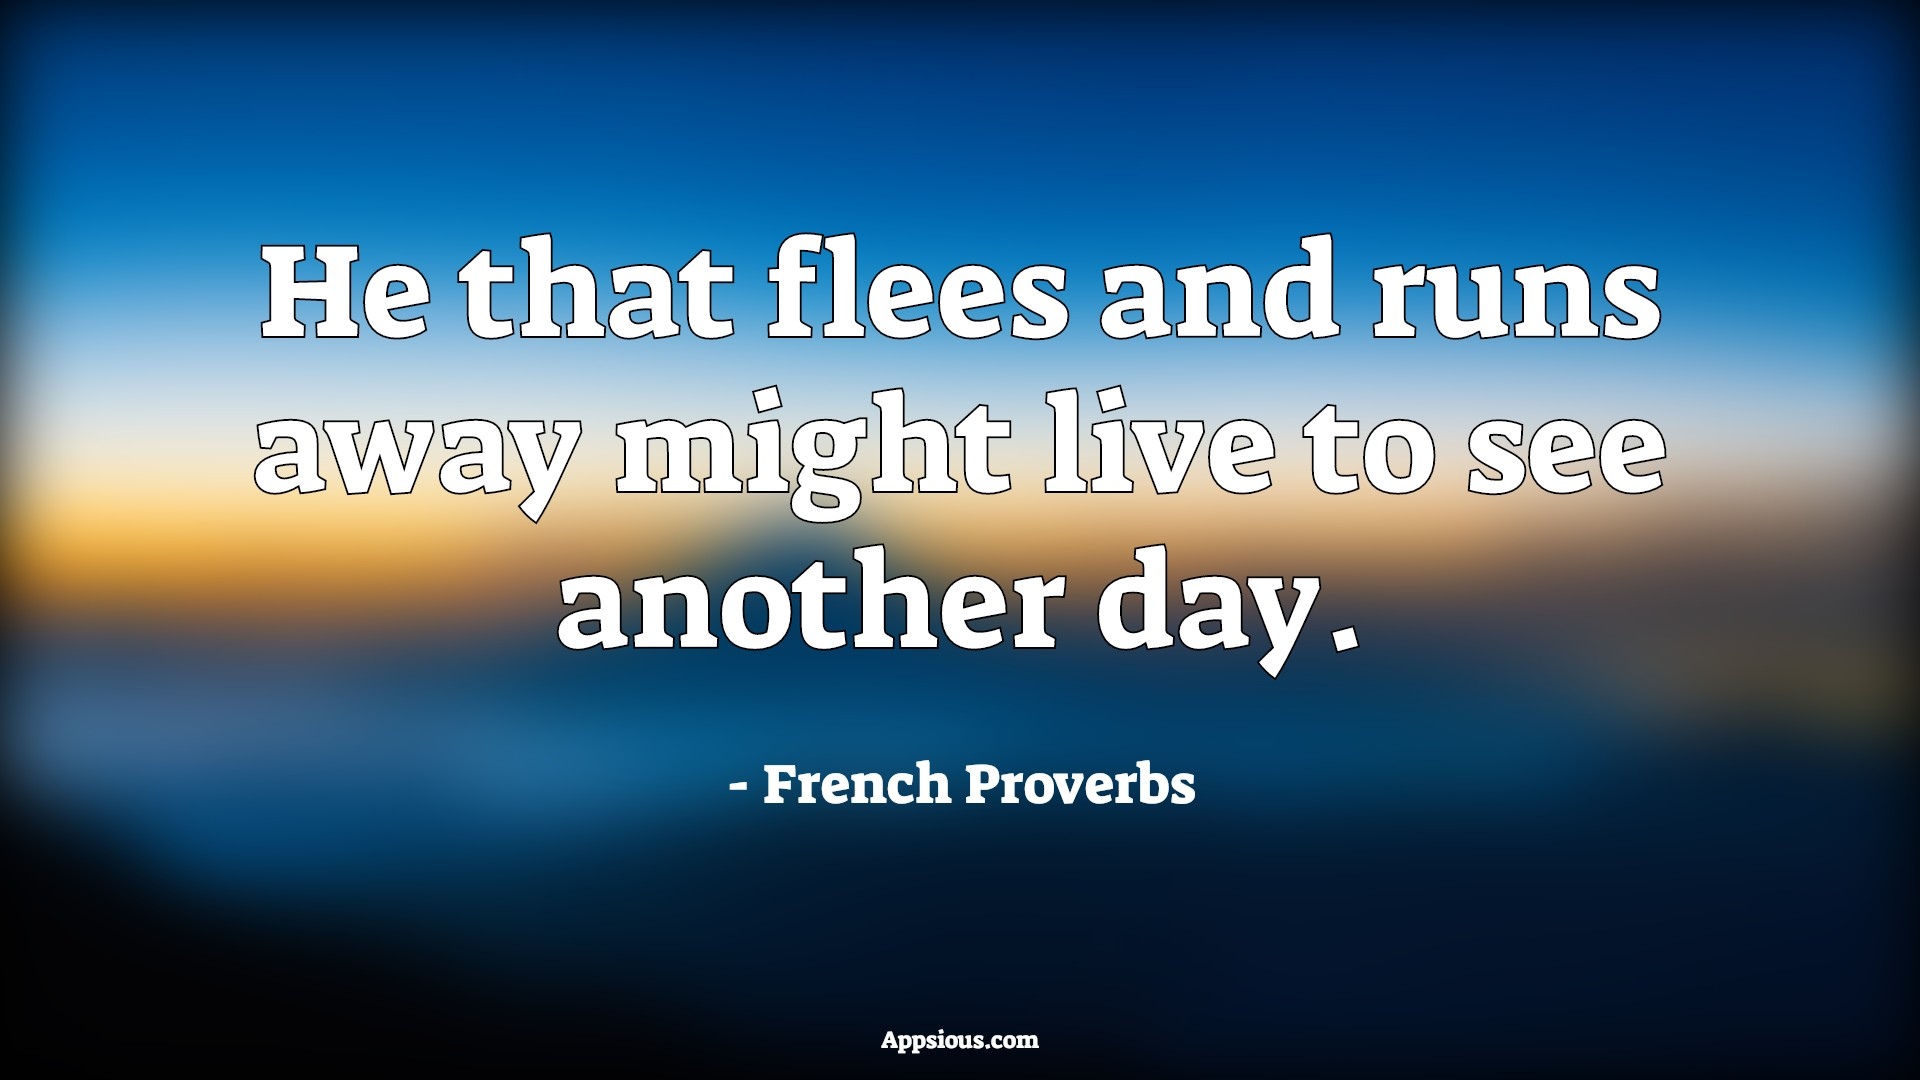 He that flees and runs away might live to see another day.